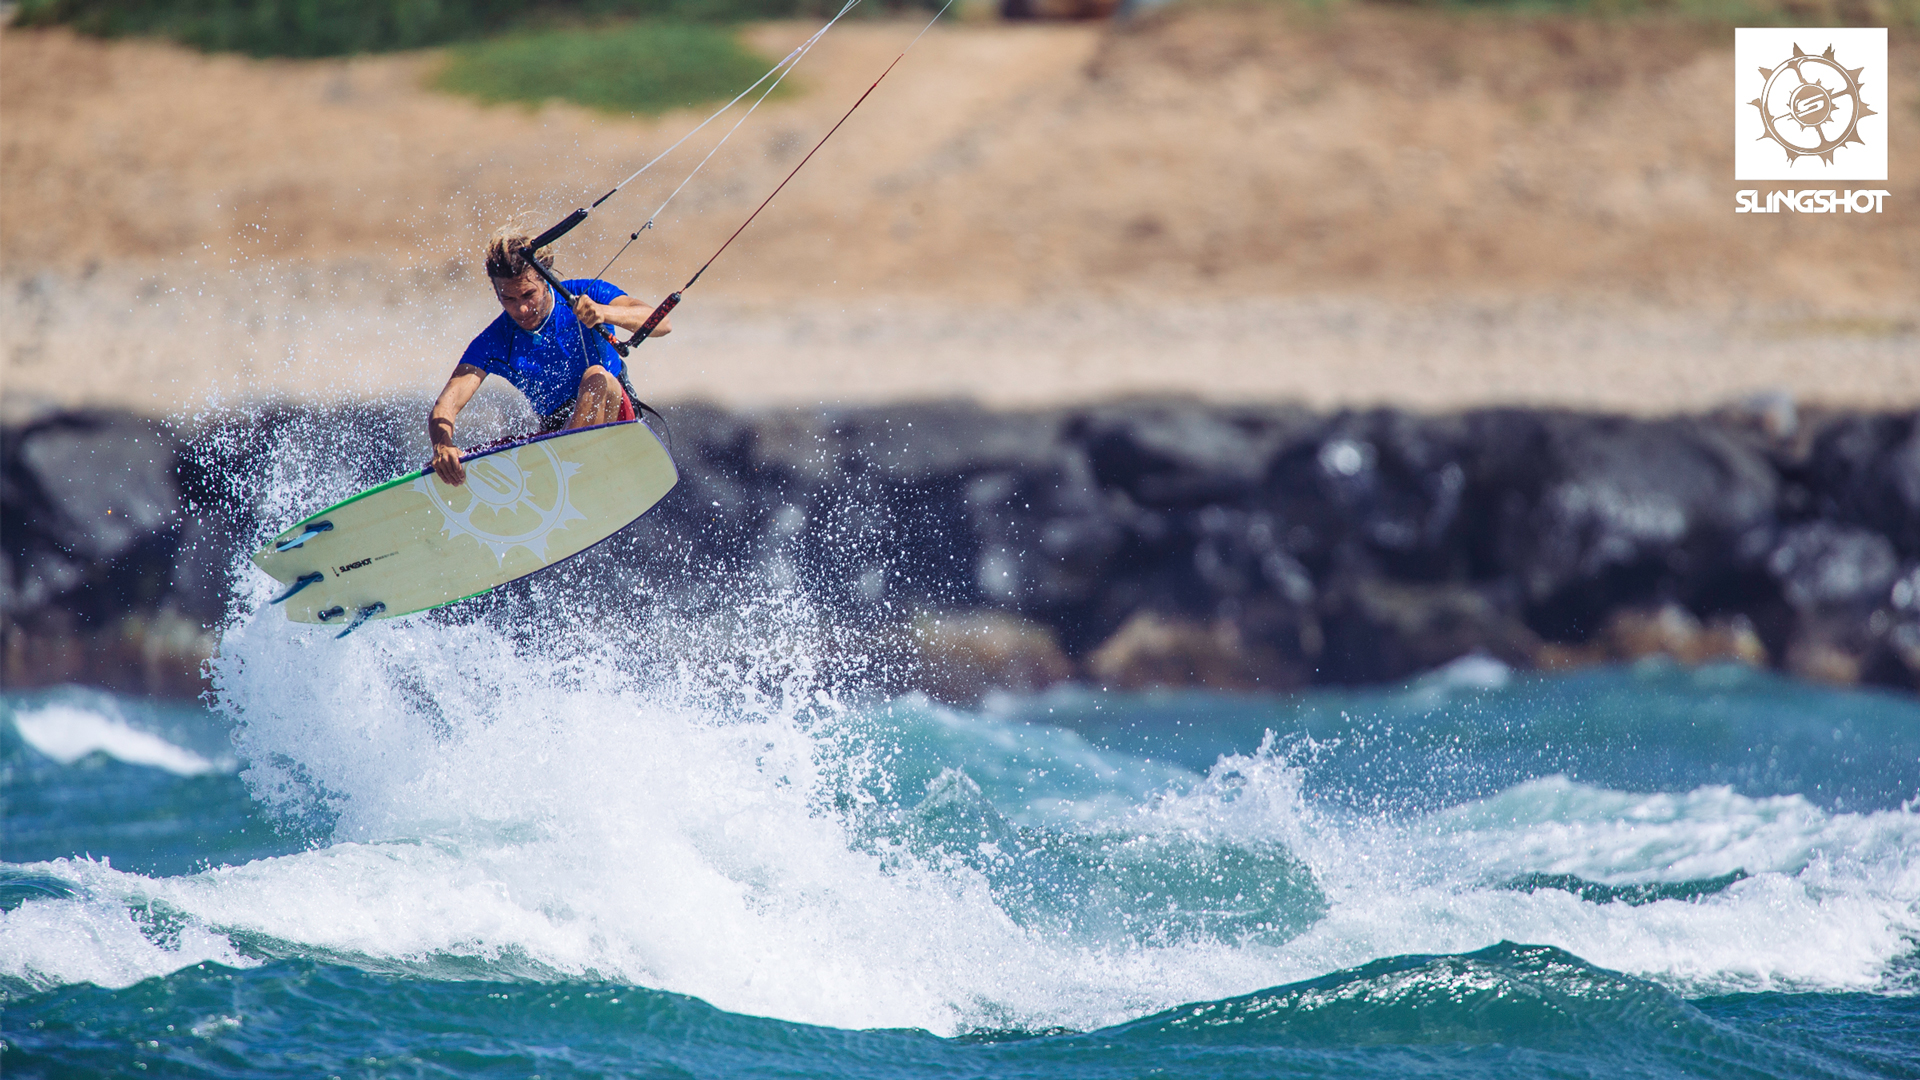 kitesurf wallpaper image - Patrick Rebstock on the 2015 Slingshot Angry Swallow kiteboard - in resolution: High Definition - HD 16:9 1920 X 1080